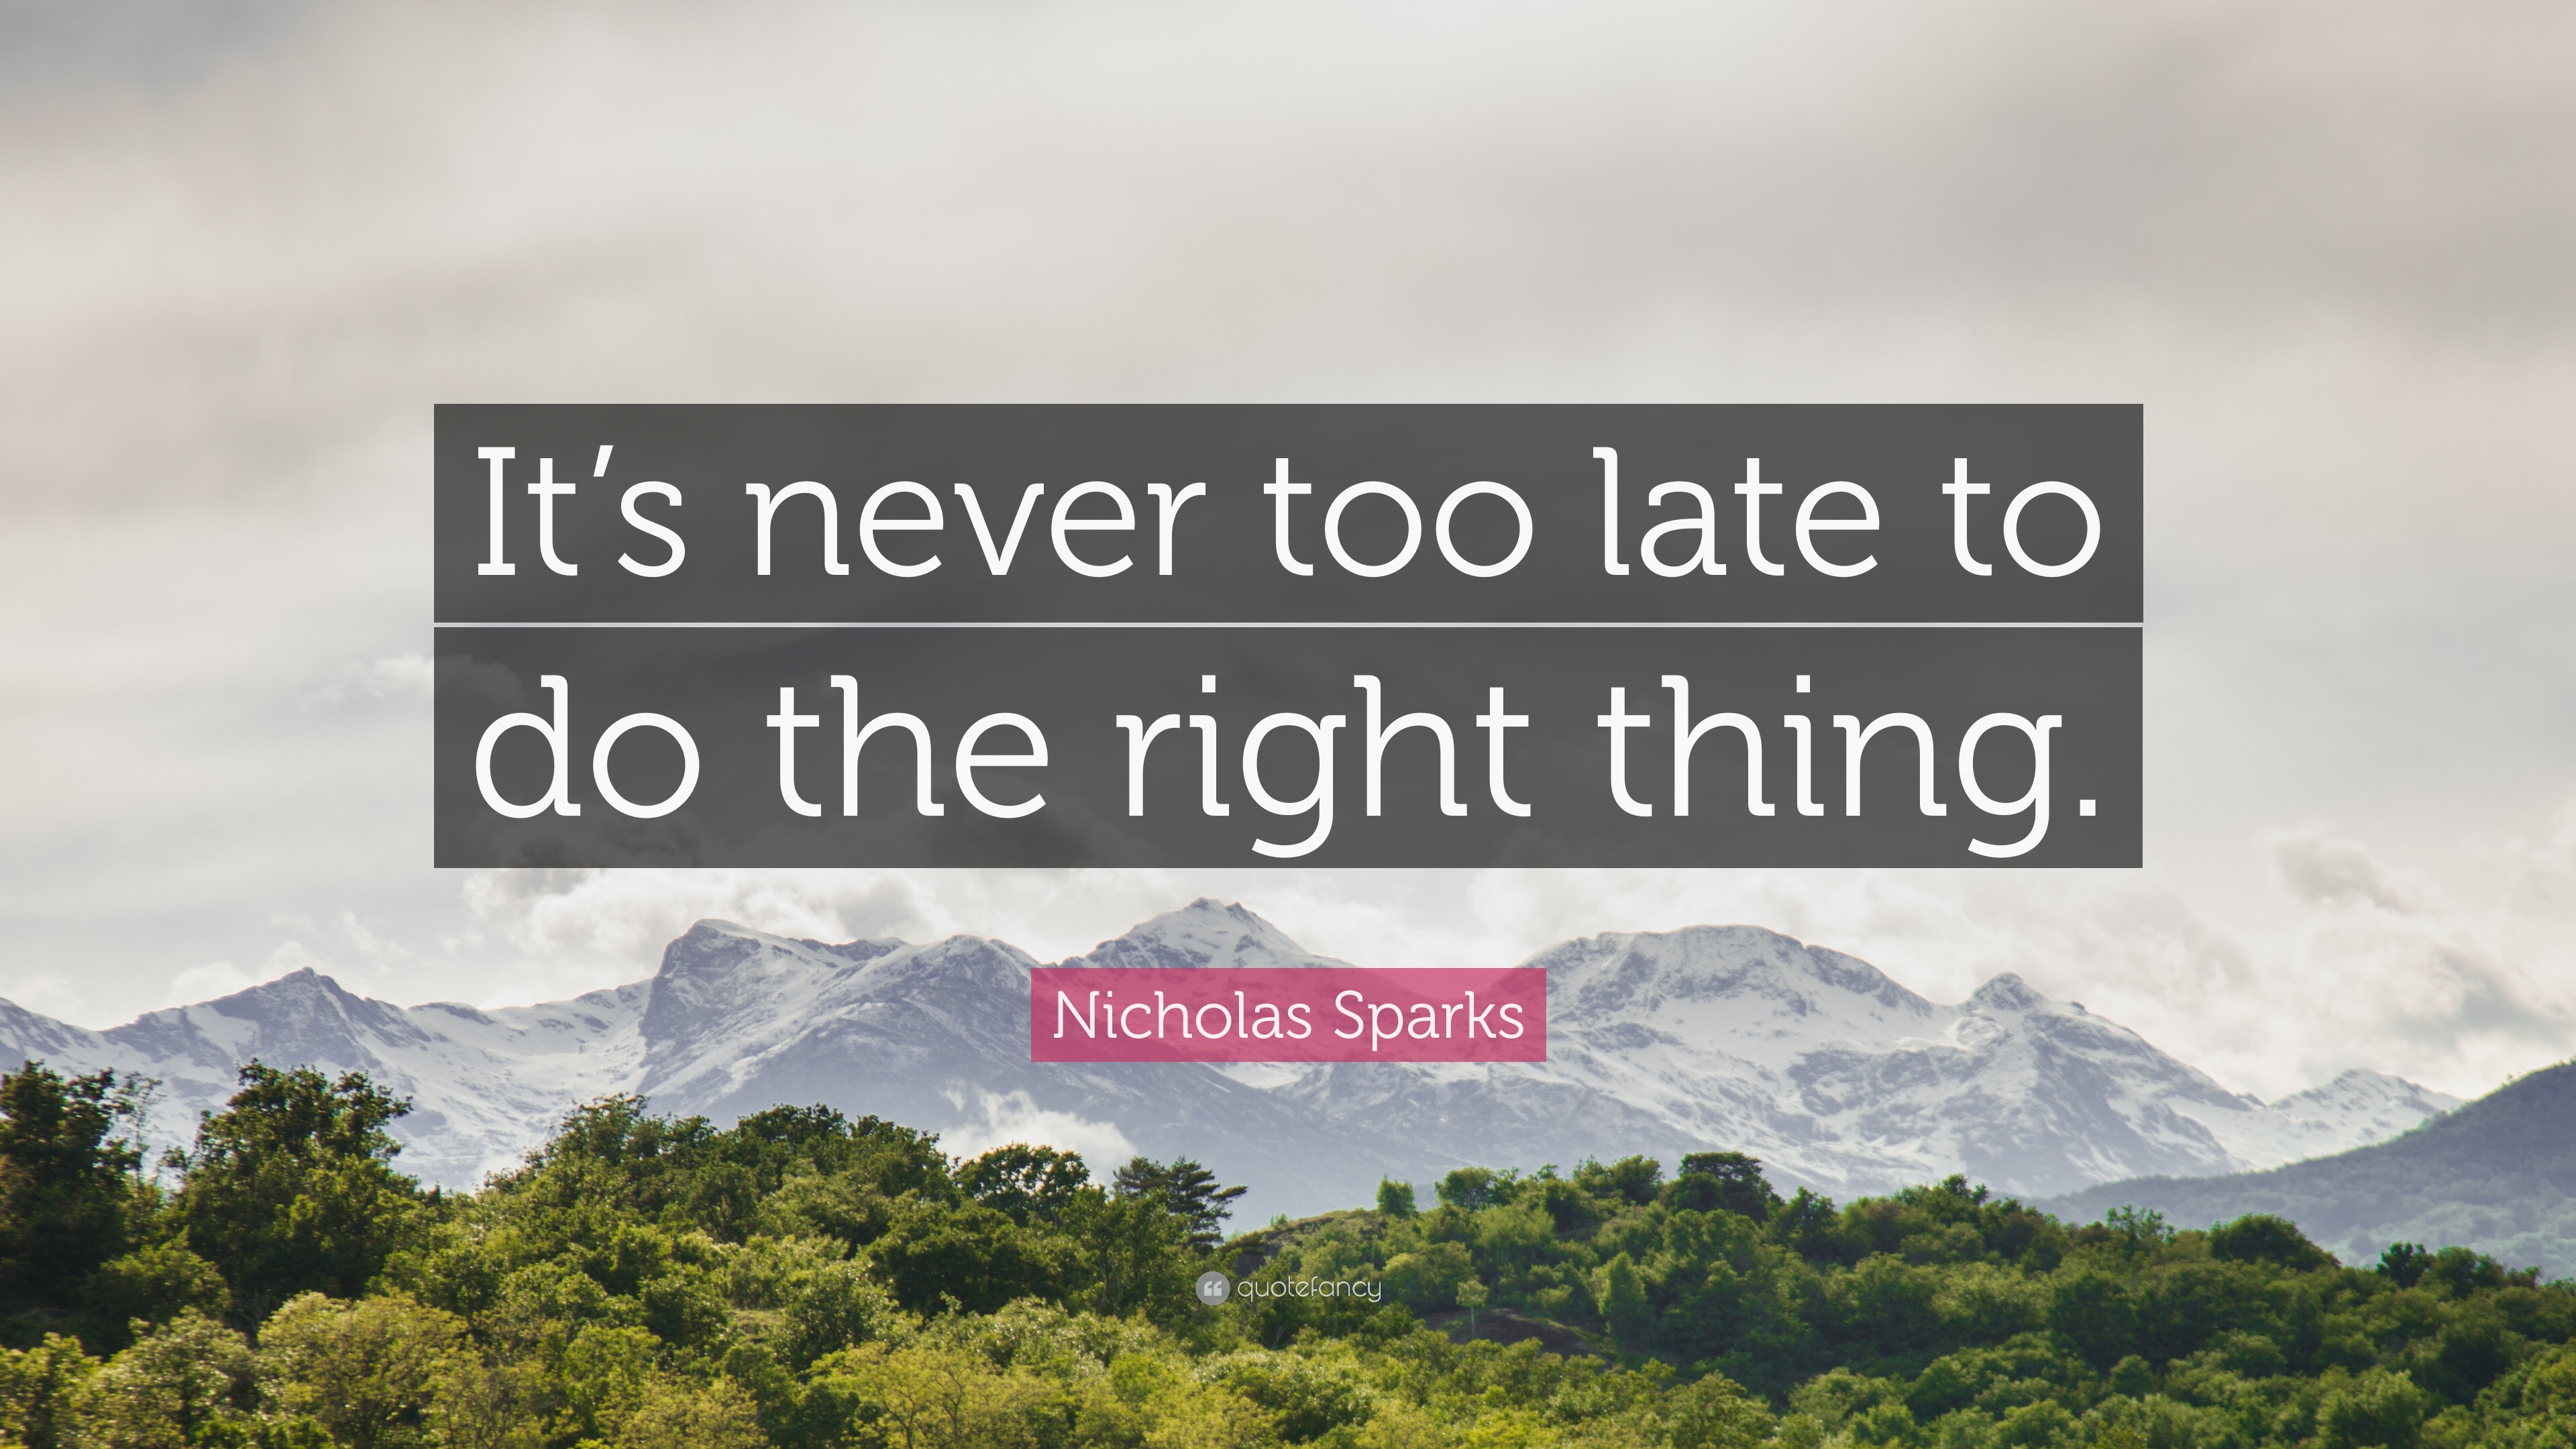 Nicholas Sparks Quote Its Never Too Late To Do The Right Thing